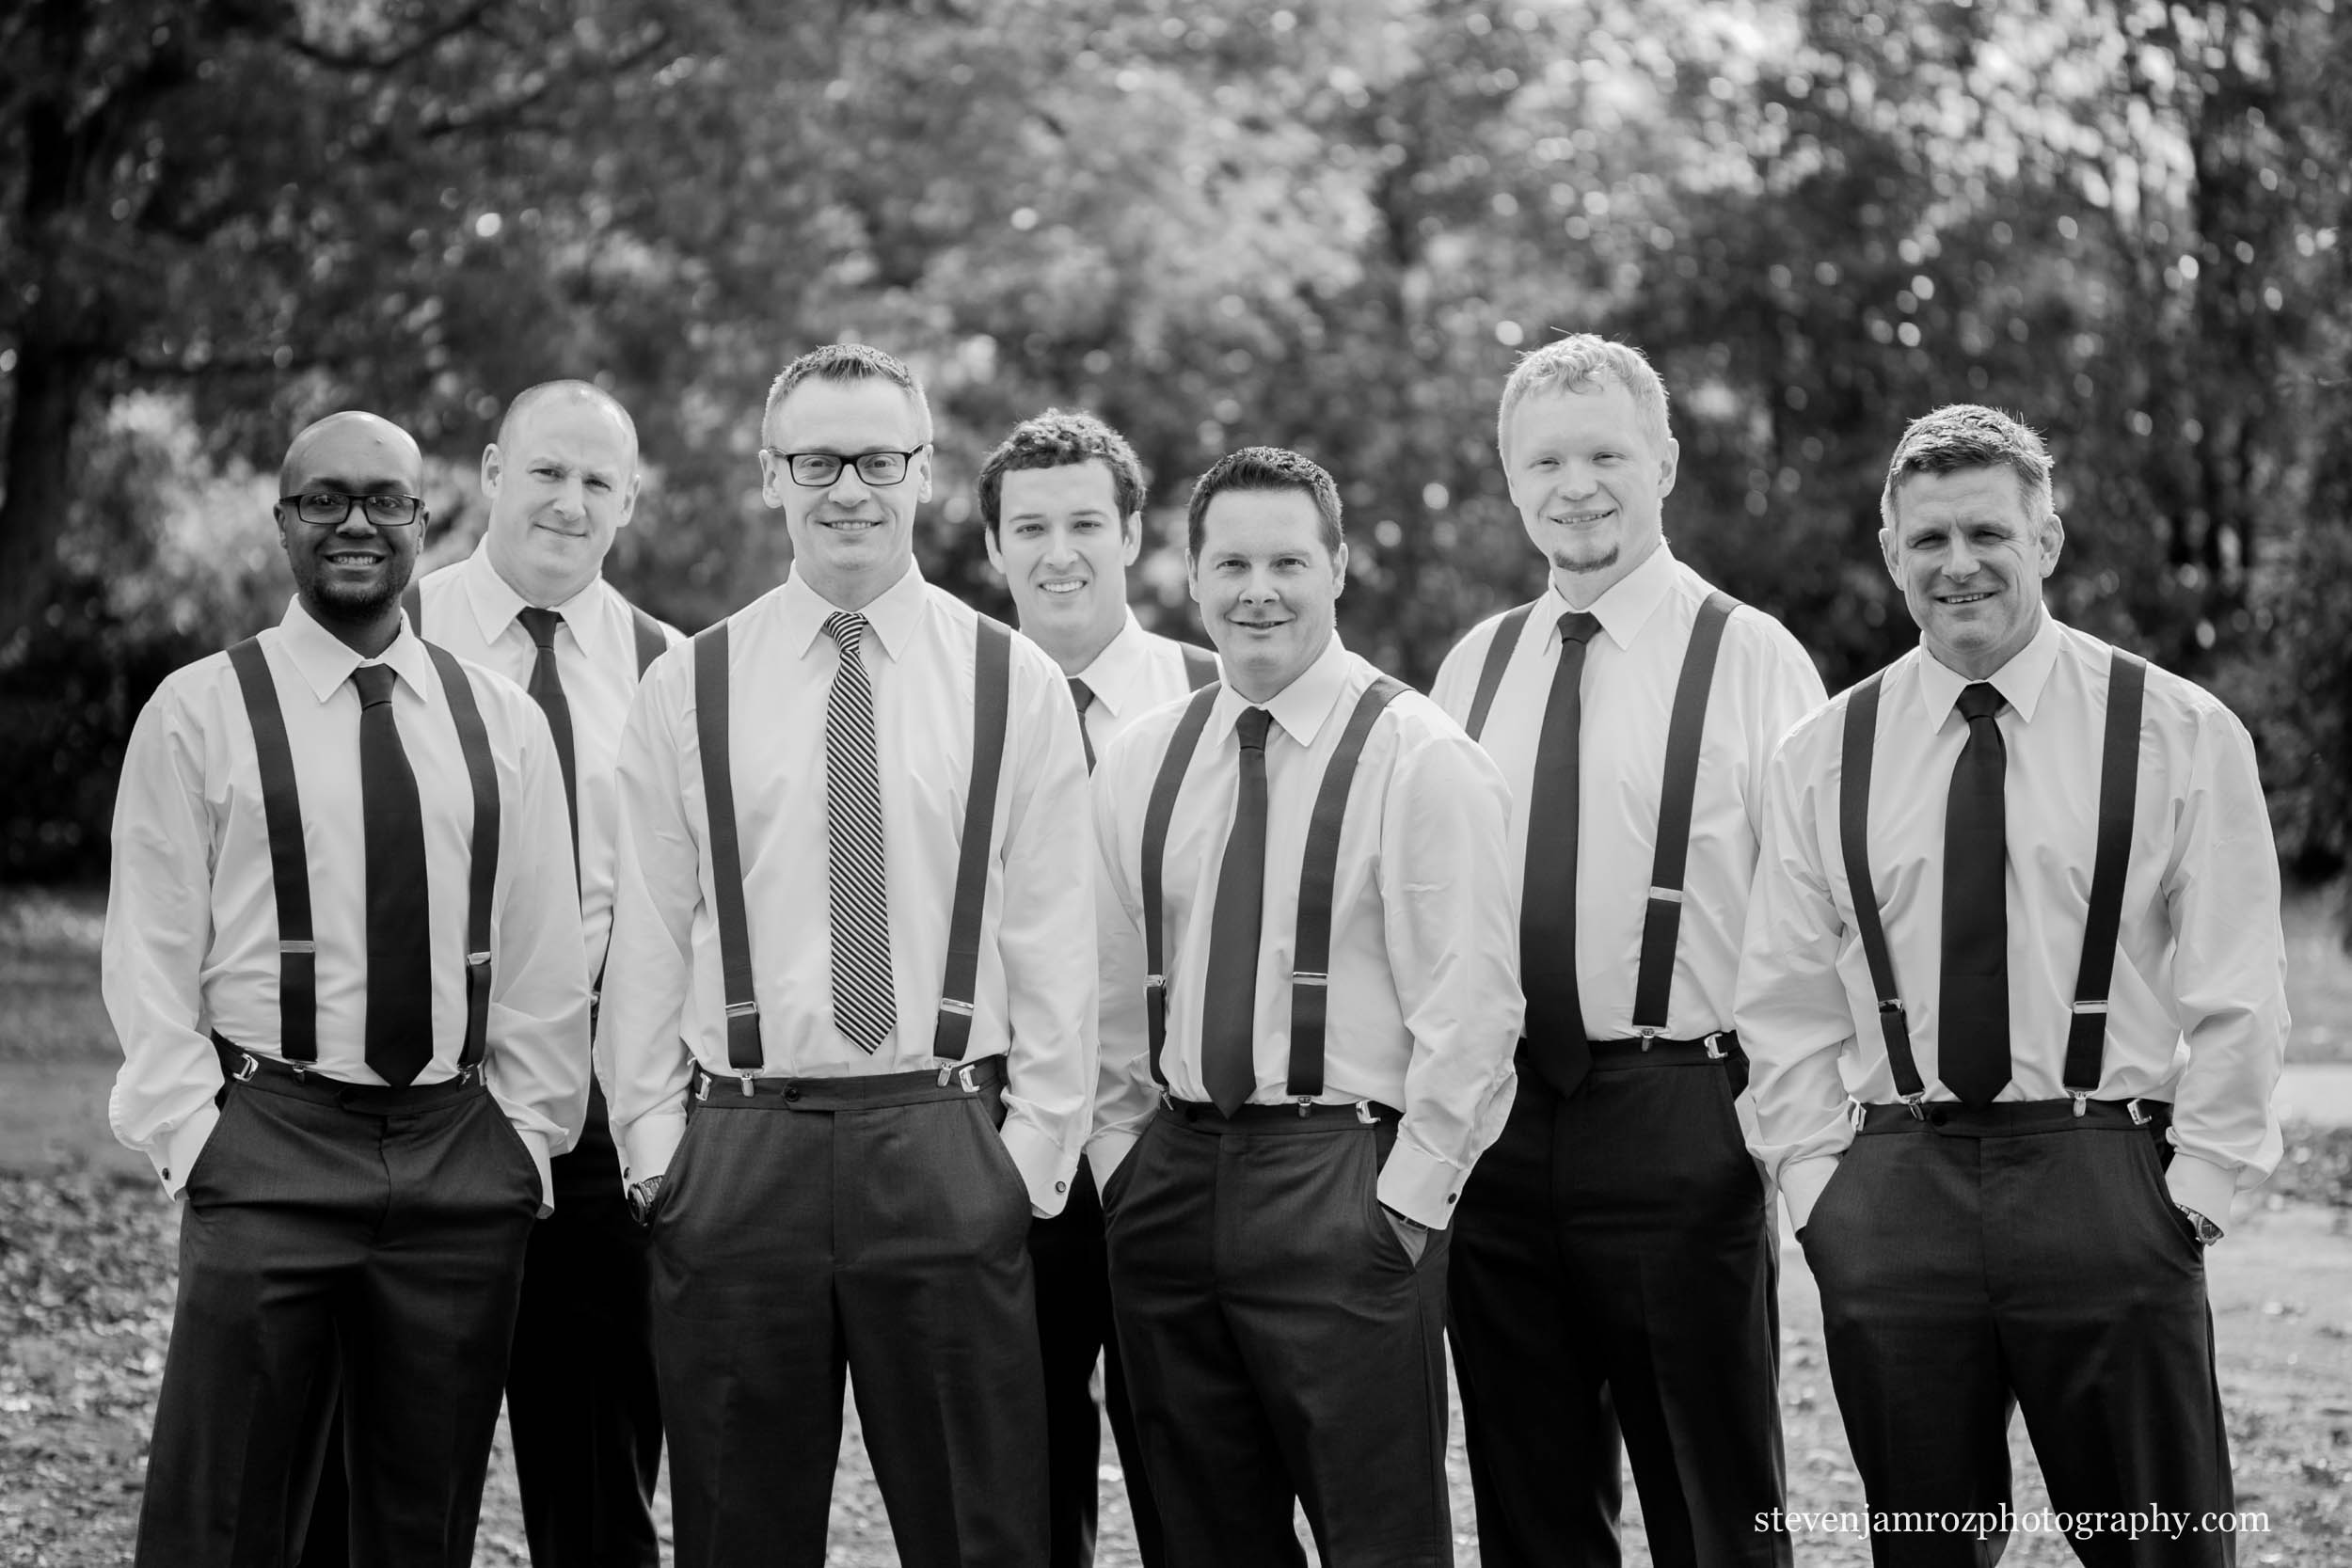 classic-groomsmen-portrait-wedding-steven-jamroz-photography-0148.jpg